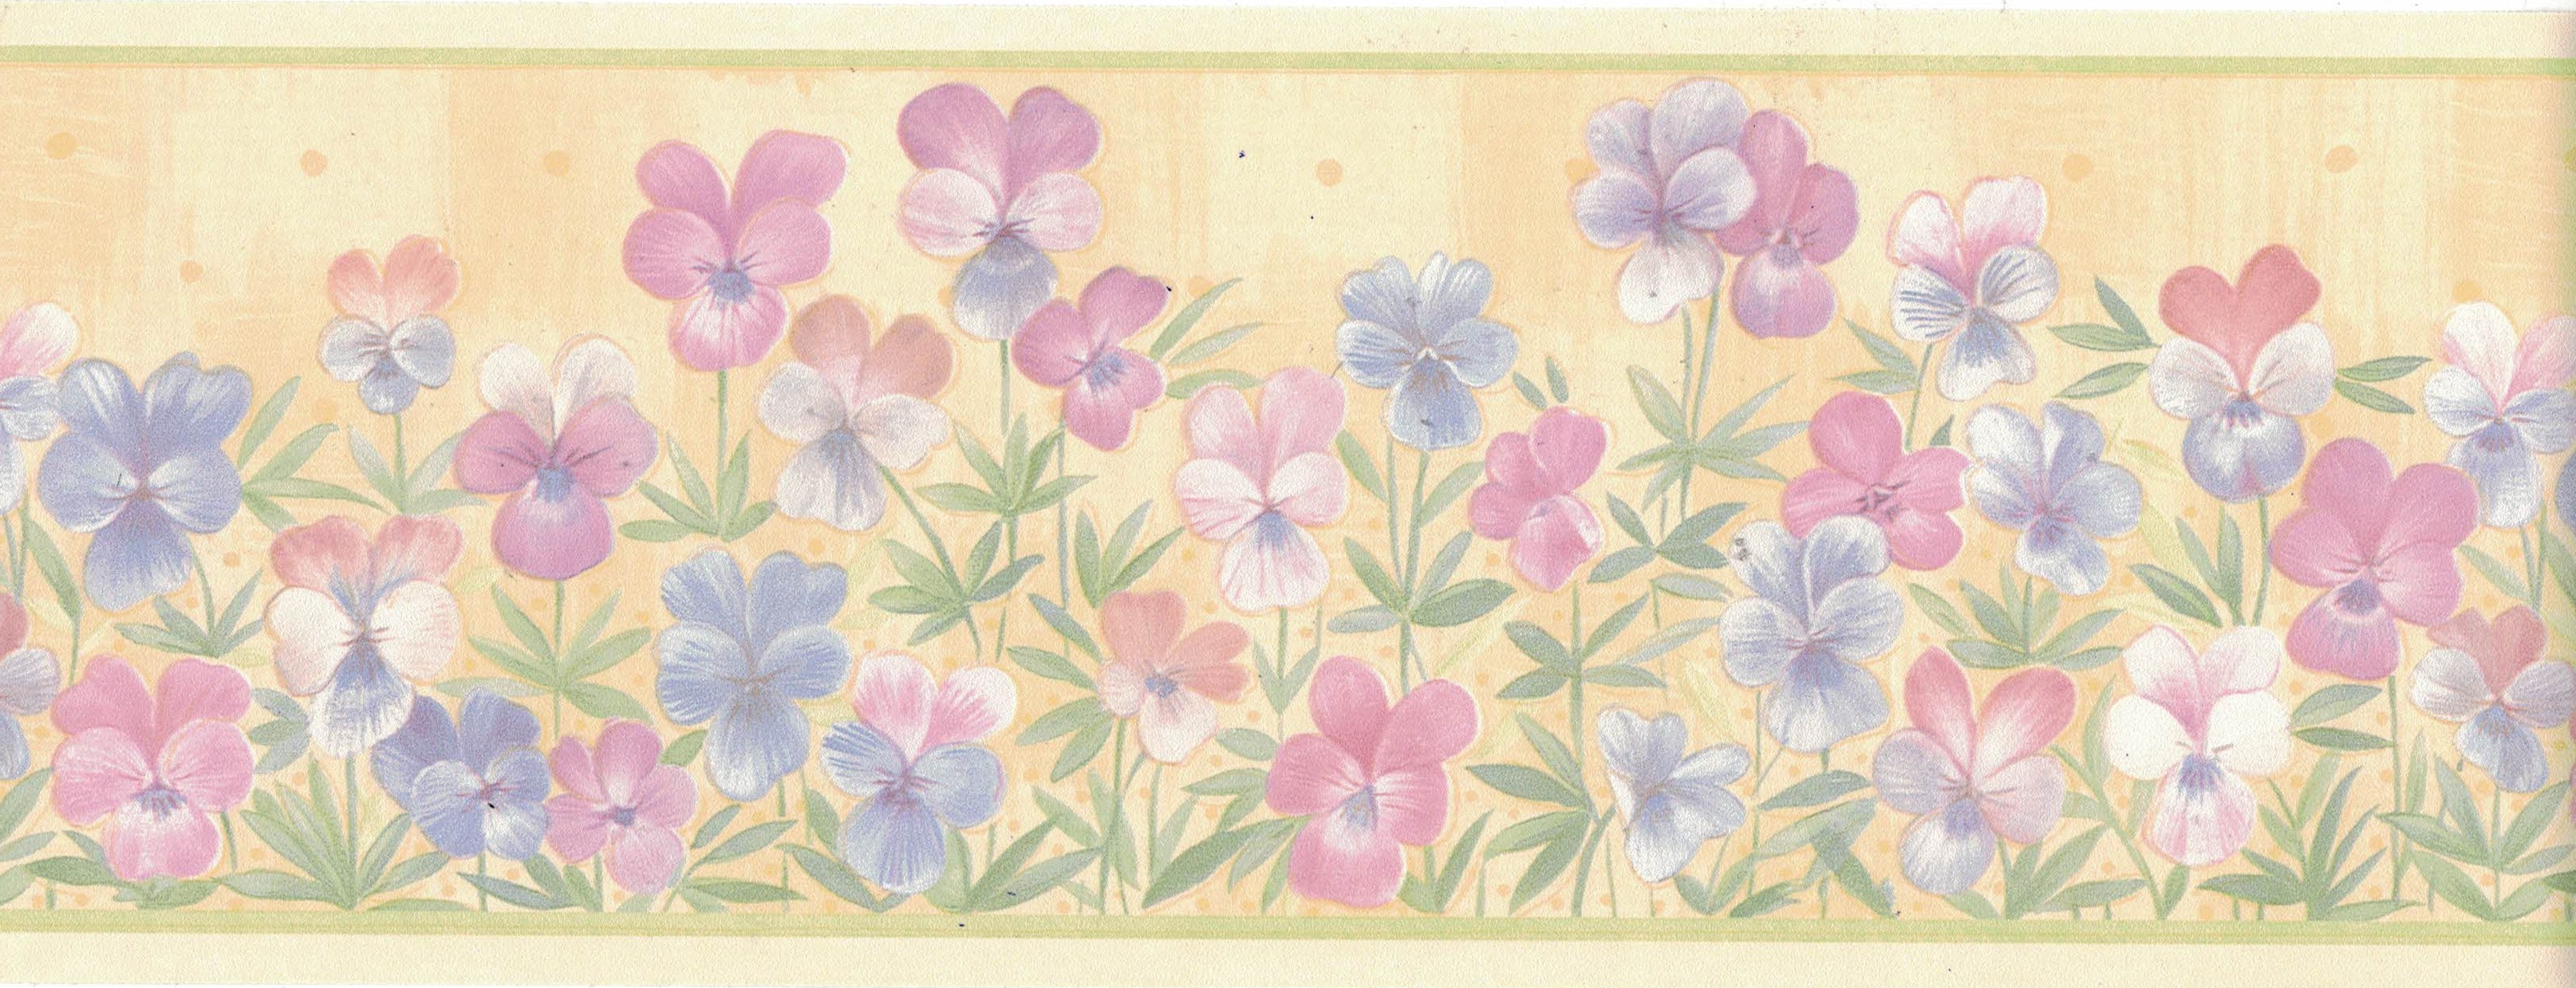 Wallpaper Border Flowers Floral New Arrival 10 1 2 Inches Wide